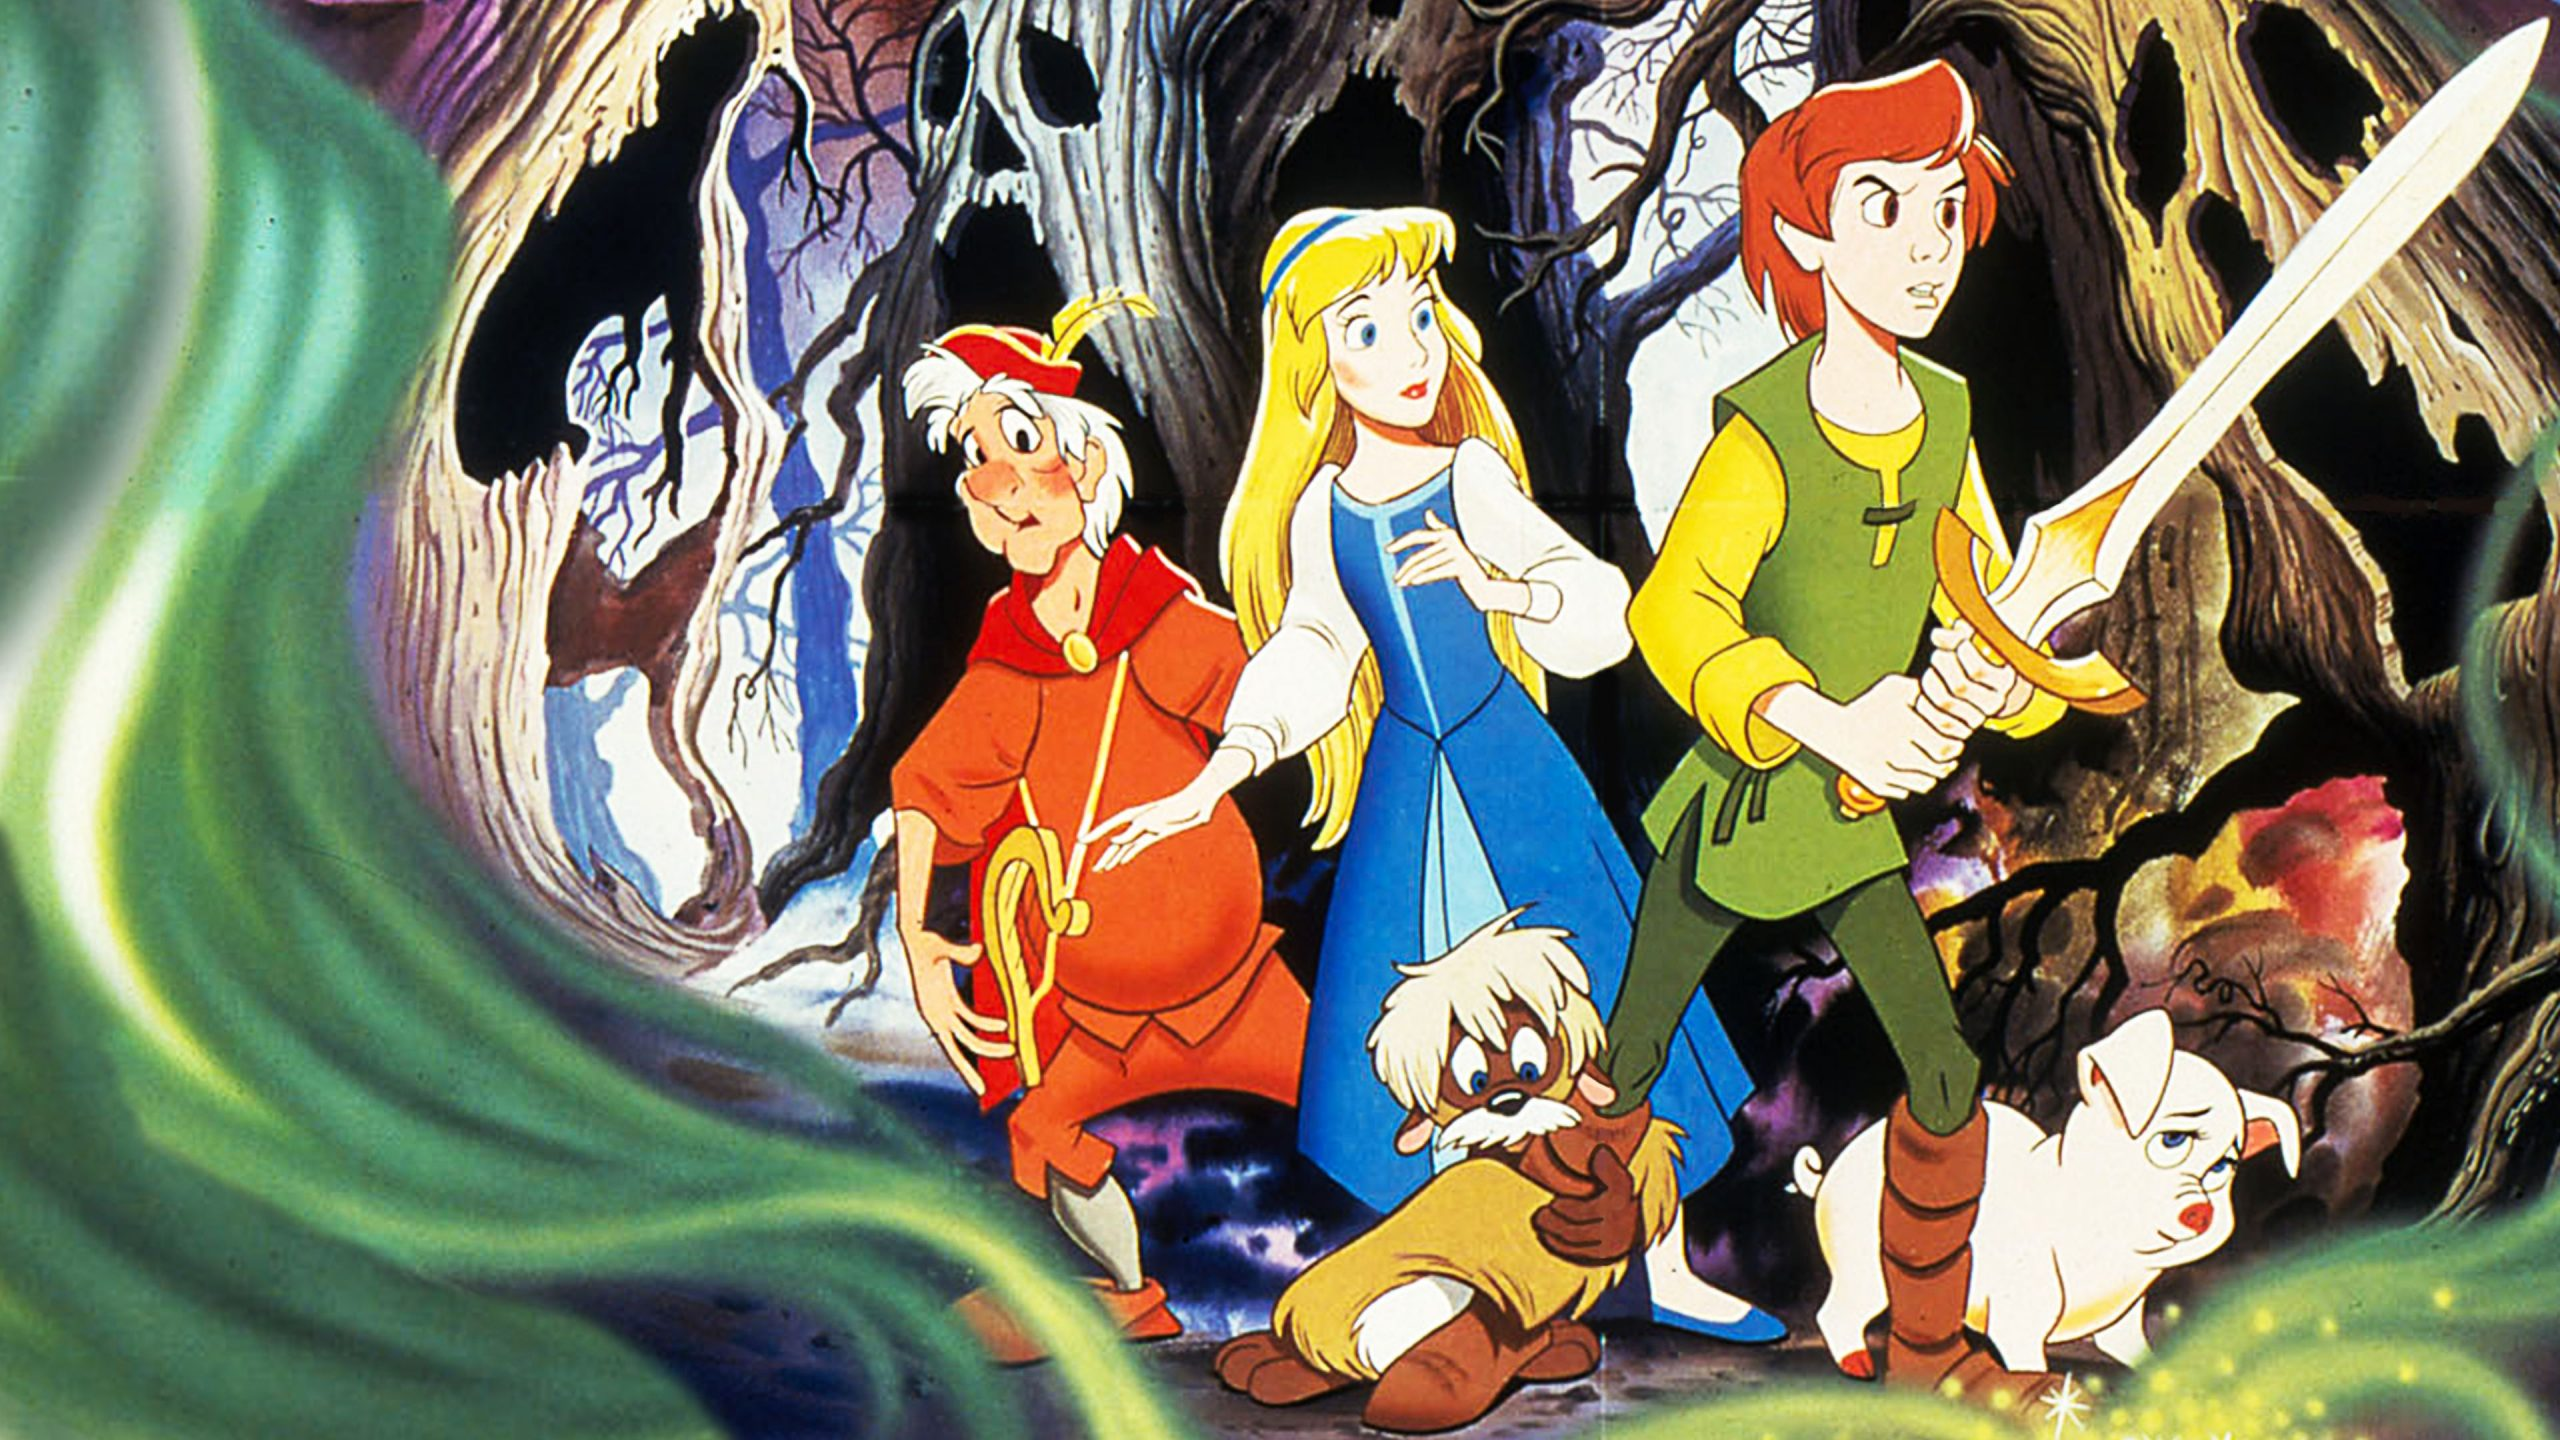 Legendary Pictures: The Parallels Between Disney's The Black Cauldron and The Legend of Zelda